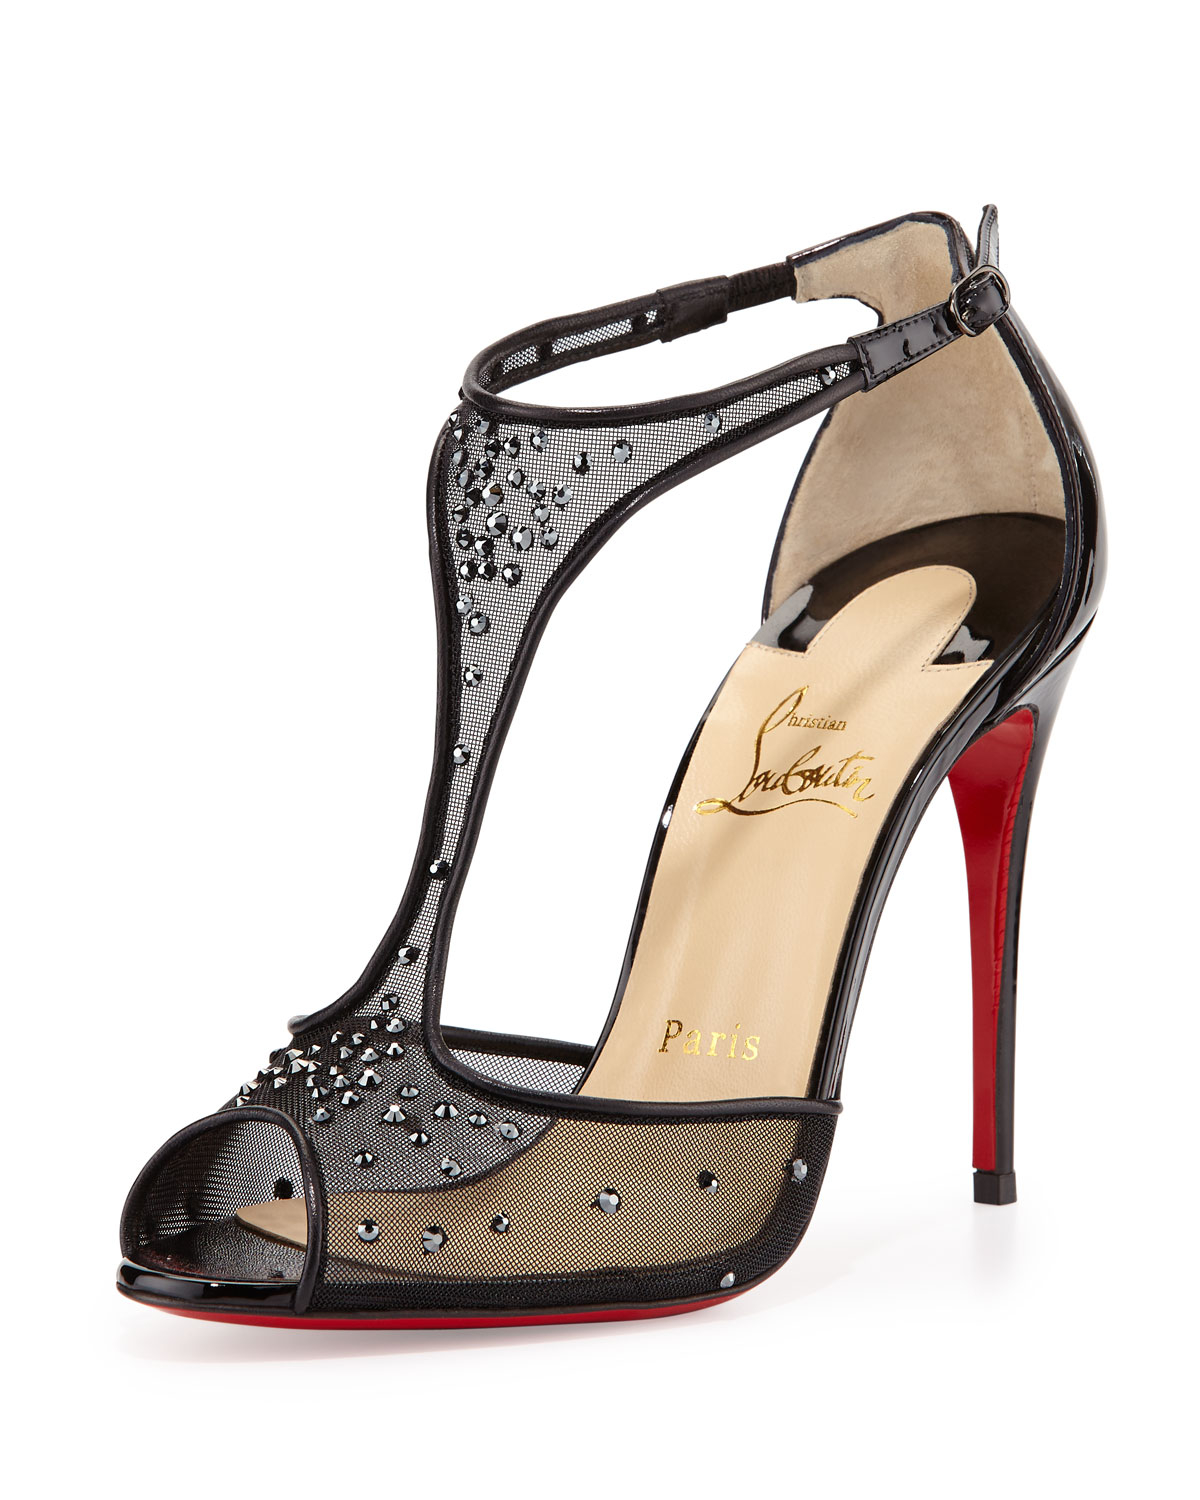 men christian louboutin sneakers - Christian louboutin Patinana Strass Red Sole Sandal in Black (red ...